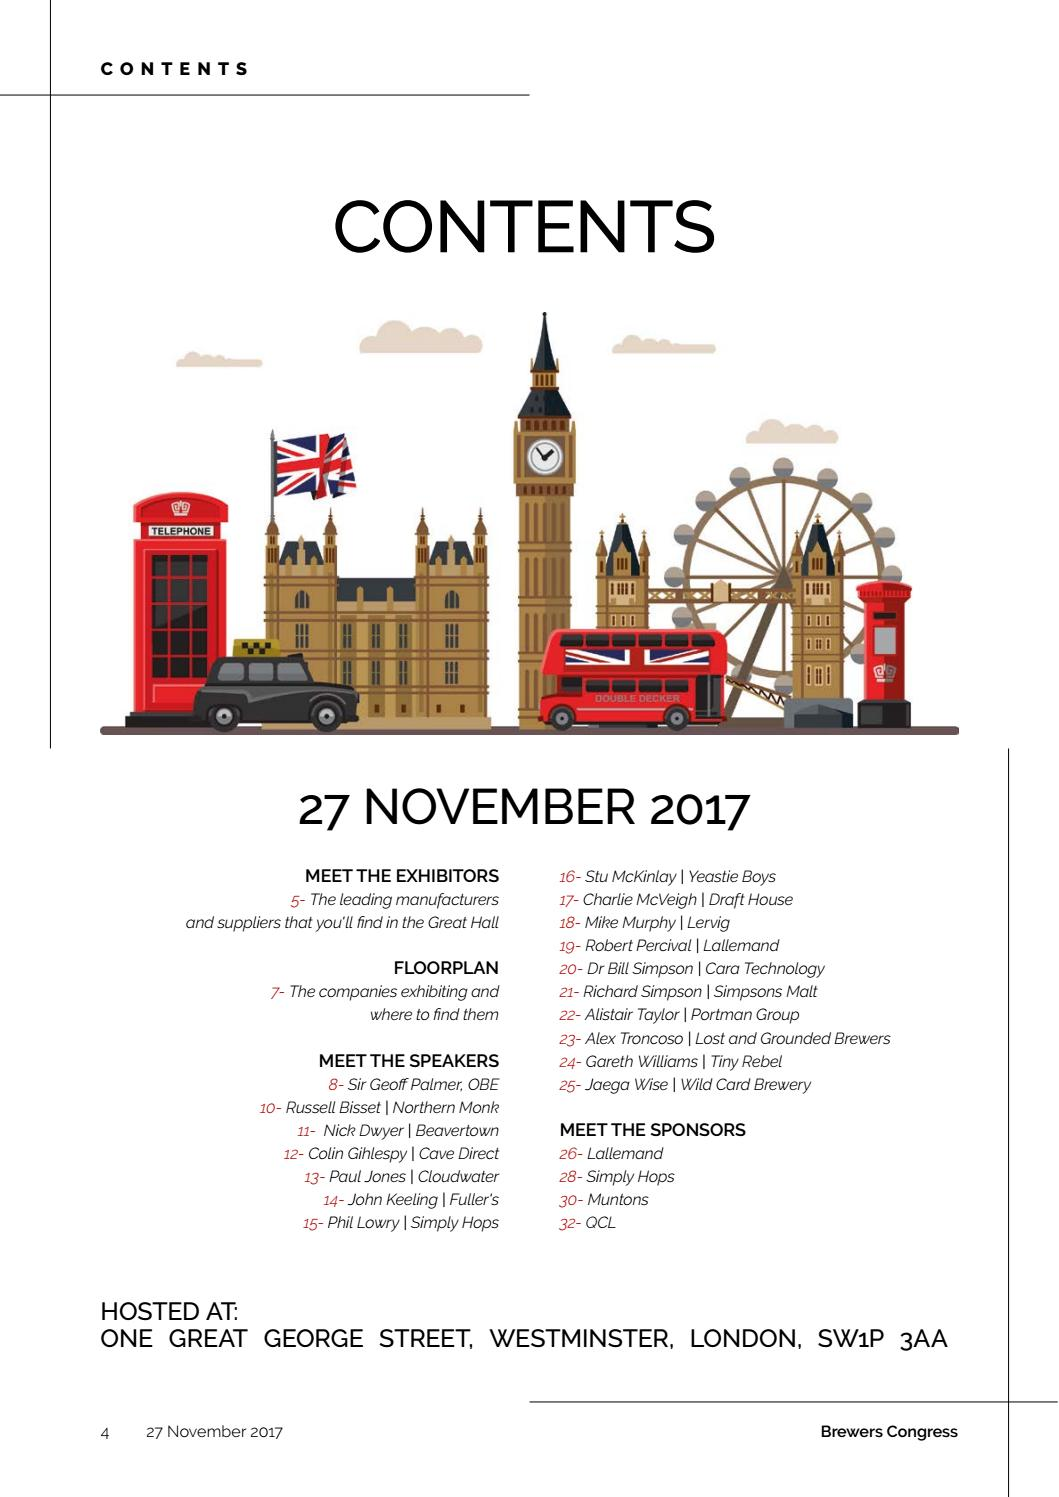 Brewers Congress Guide 2017 By Reby Media Issuu